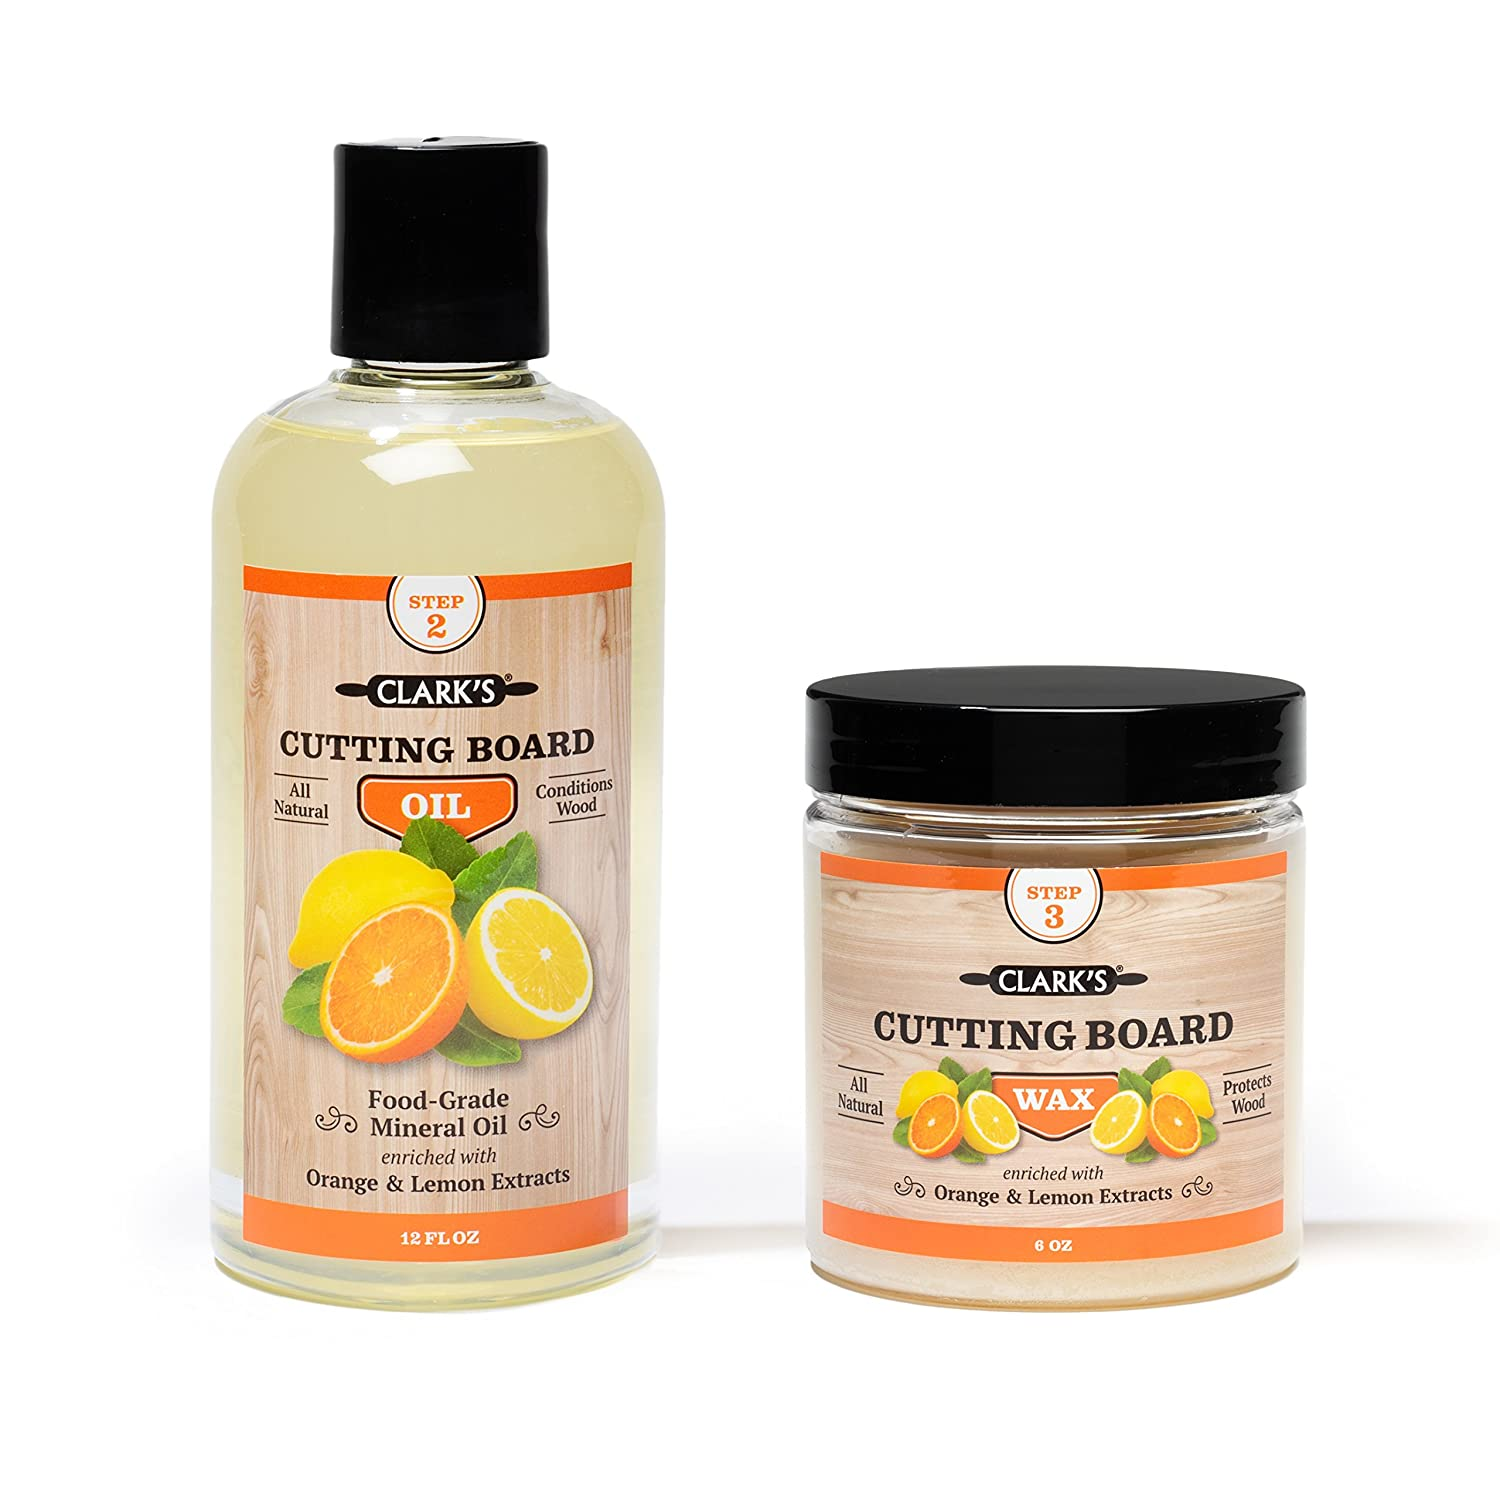 CLARK'S Cutting Board Oil & Wax (2 Bottle Set) | Includes CLARK'S Cutting Board Oil (12oz) & CLARK'S Finish Wax (6oz) | Orange & Lemon Scent CLARKS 853324008036